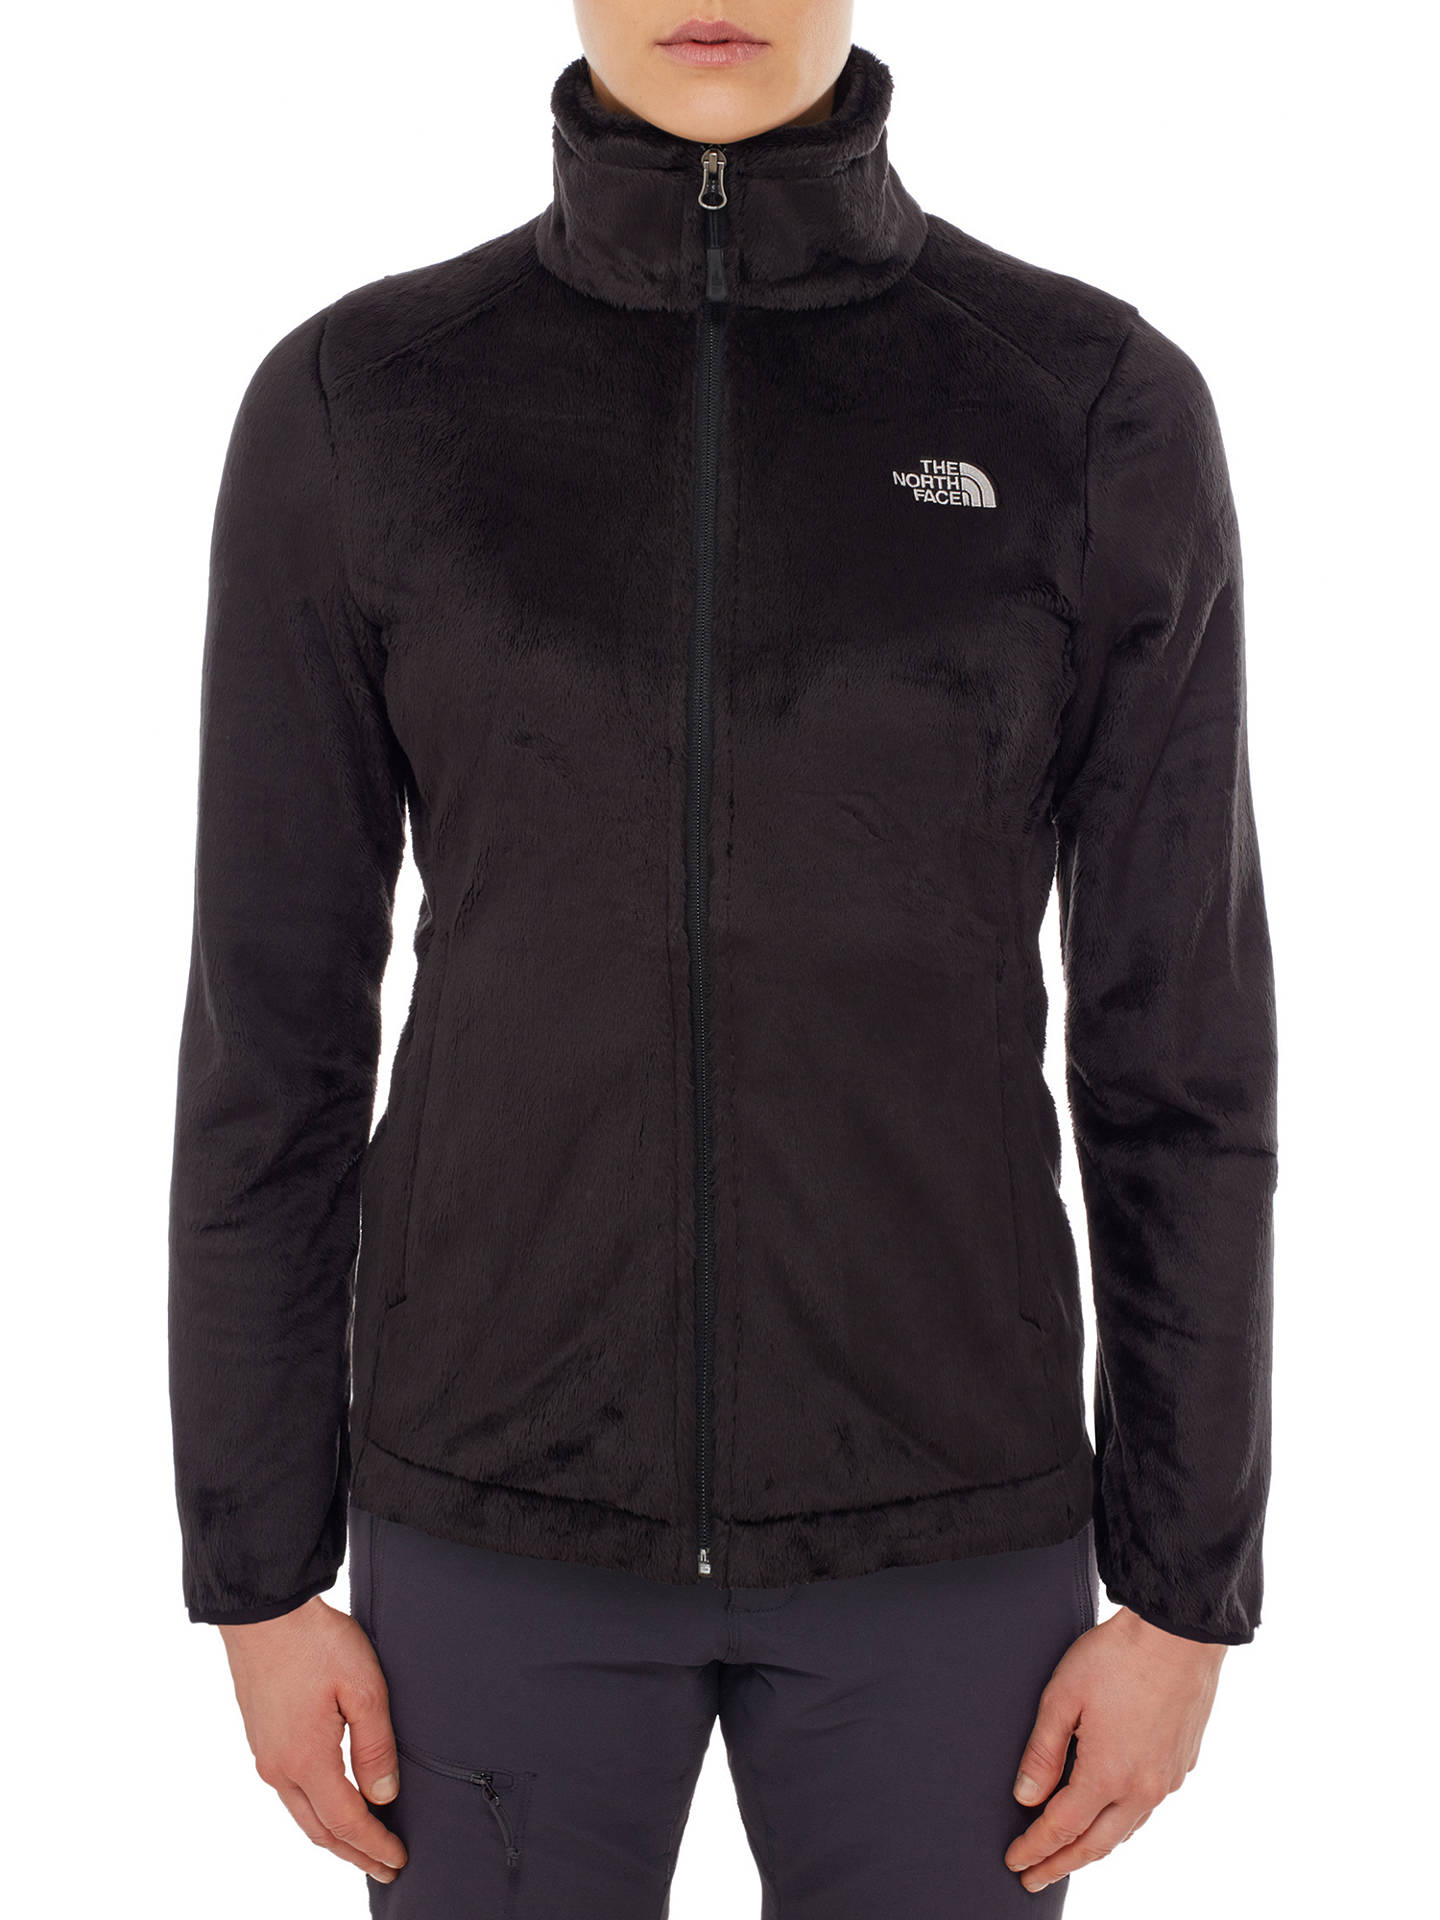 32fd3a76b The North Face Osito 2 Women's Fleece Jacket at John Lewis & Partners